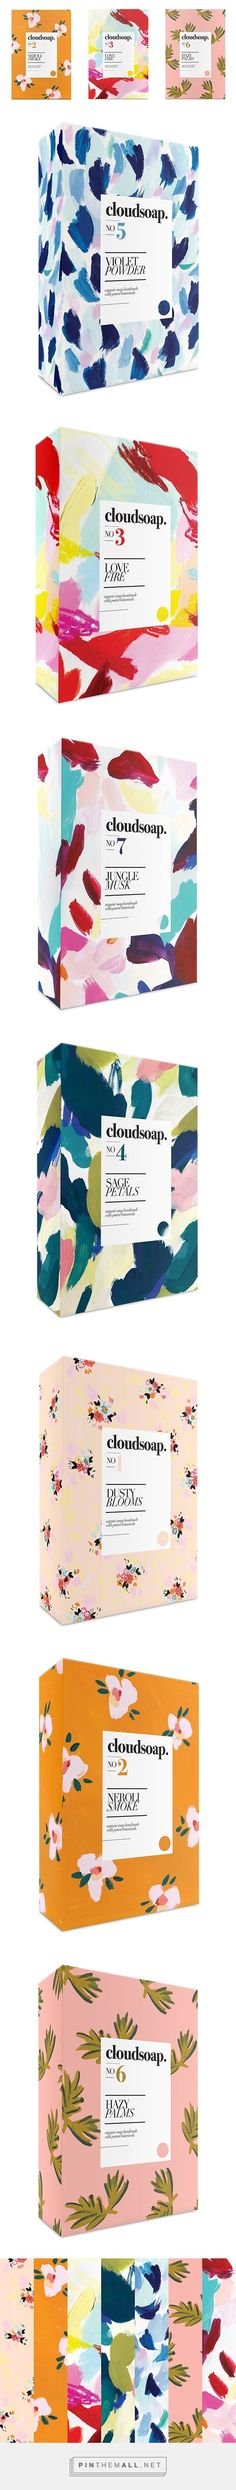 Cloudsoap // Jamie P Smail, illustrator Katy Smail PD